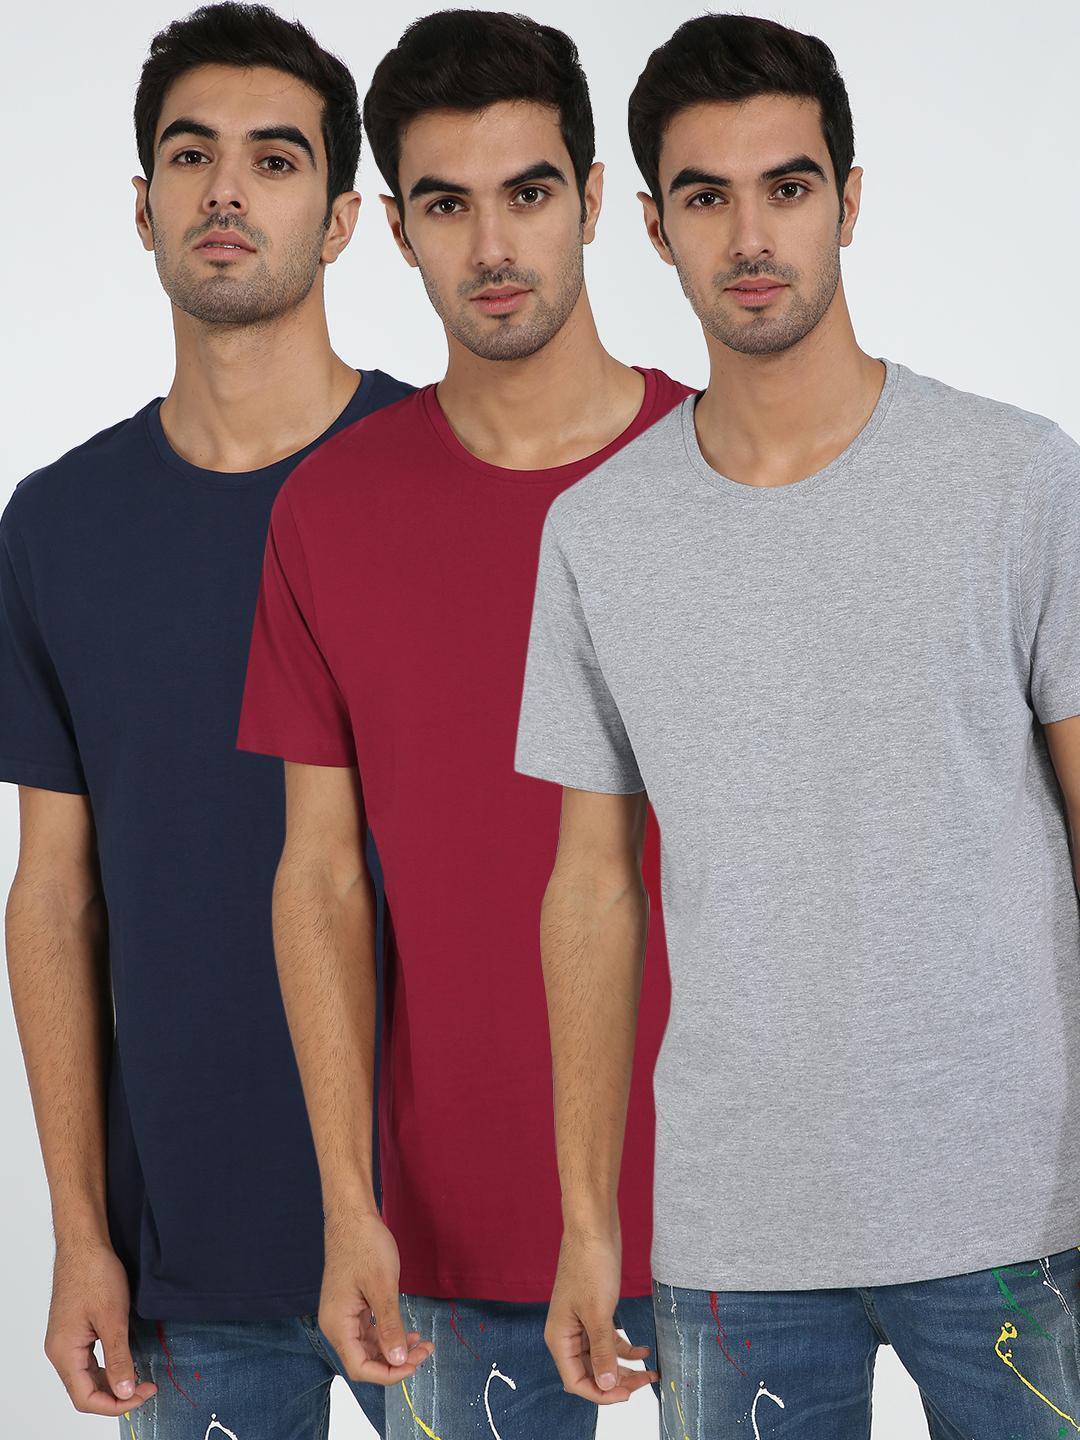 Blue Saint Multi Basic Crew Neck T-Shirt (Pack Of 3) 1